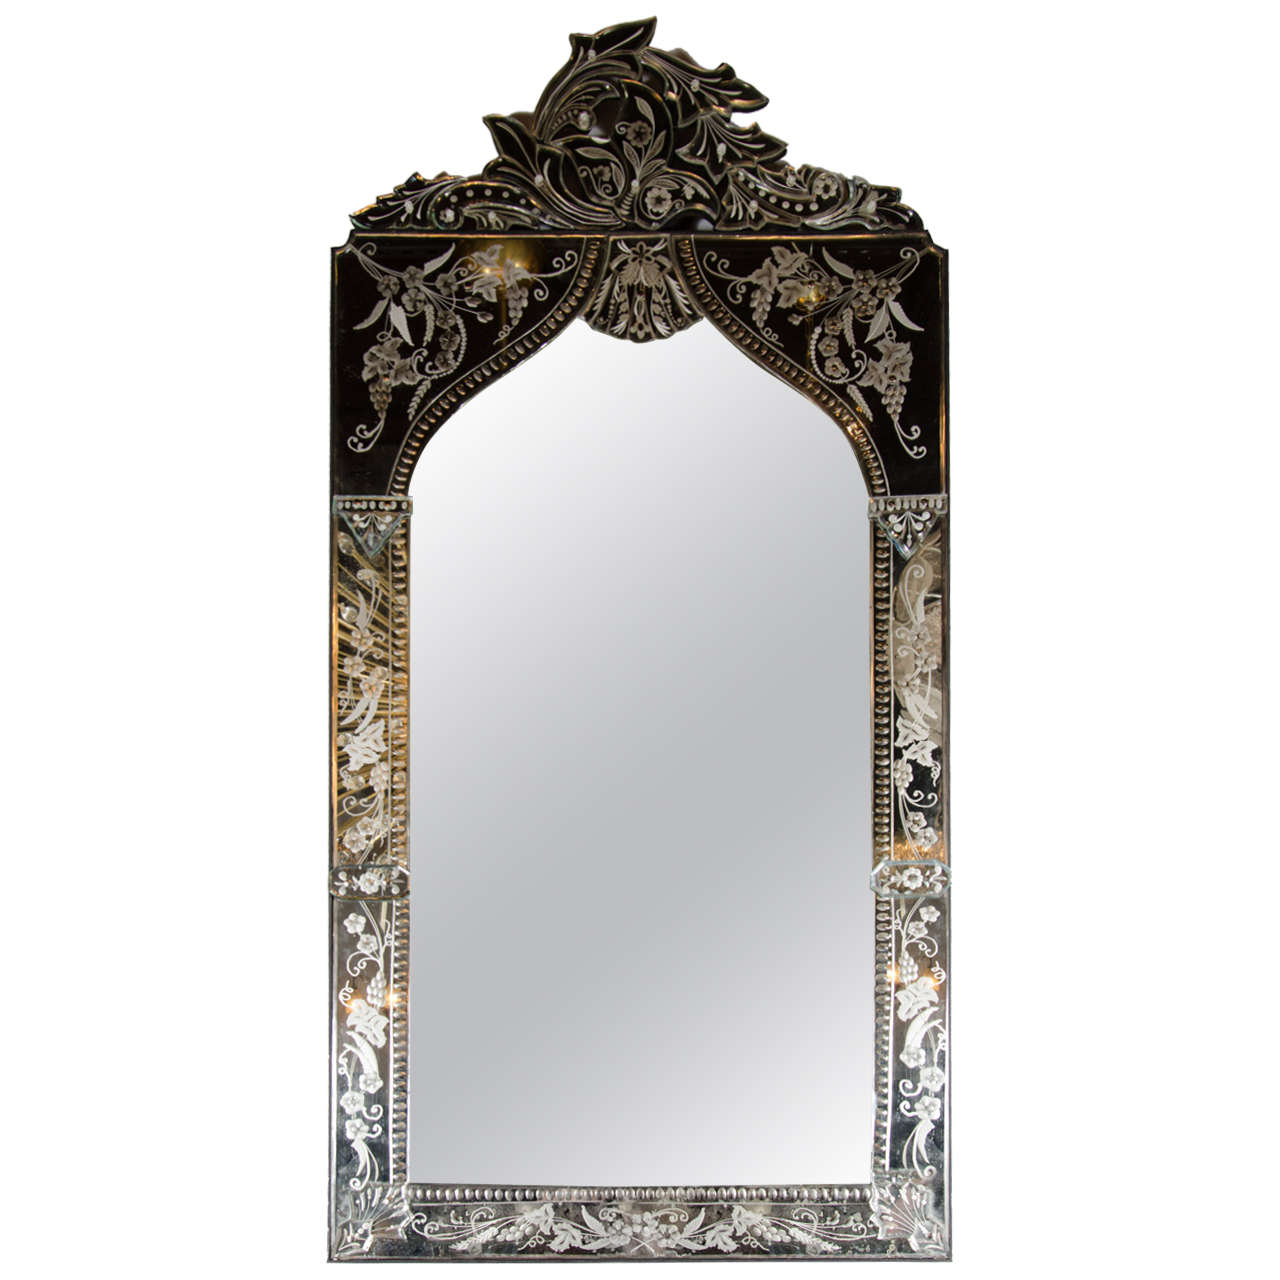 Exquisite Venetian Arabesque Style Mirror With Reverse